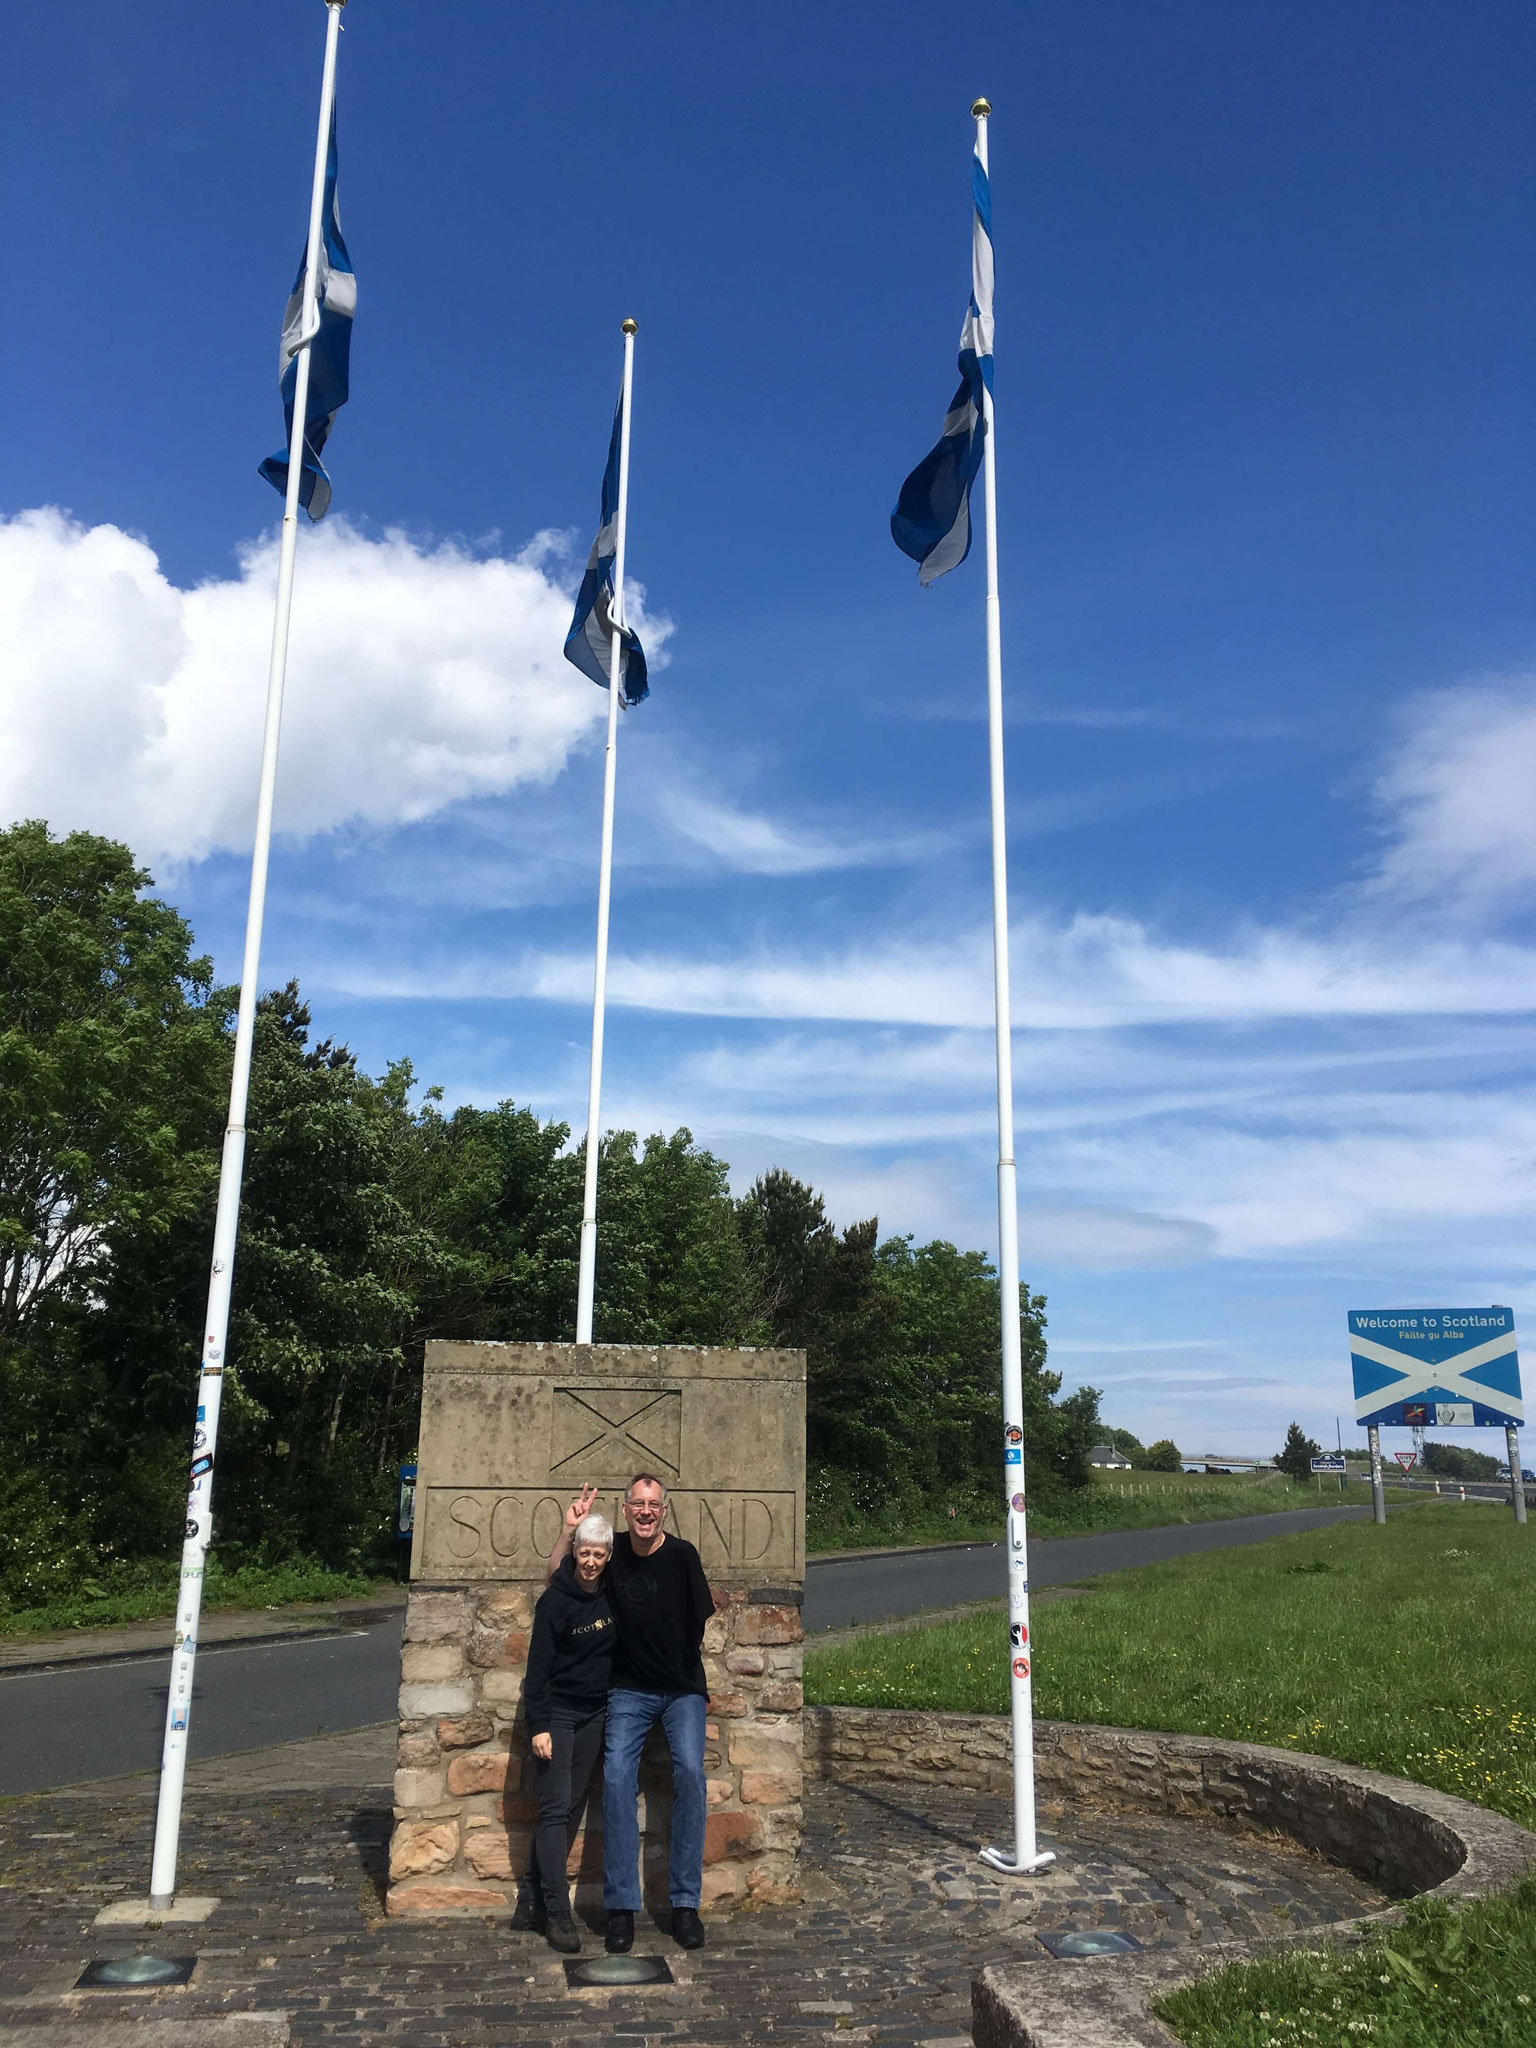 Regards from the Scottish border